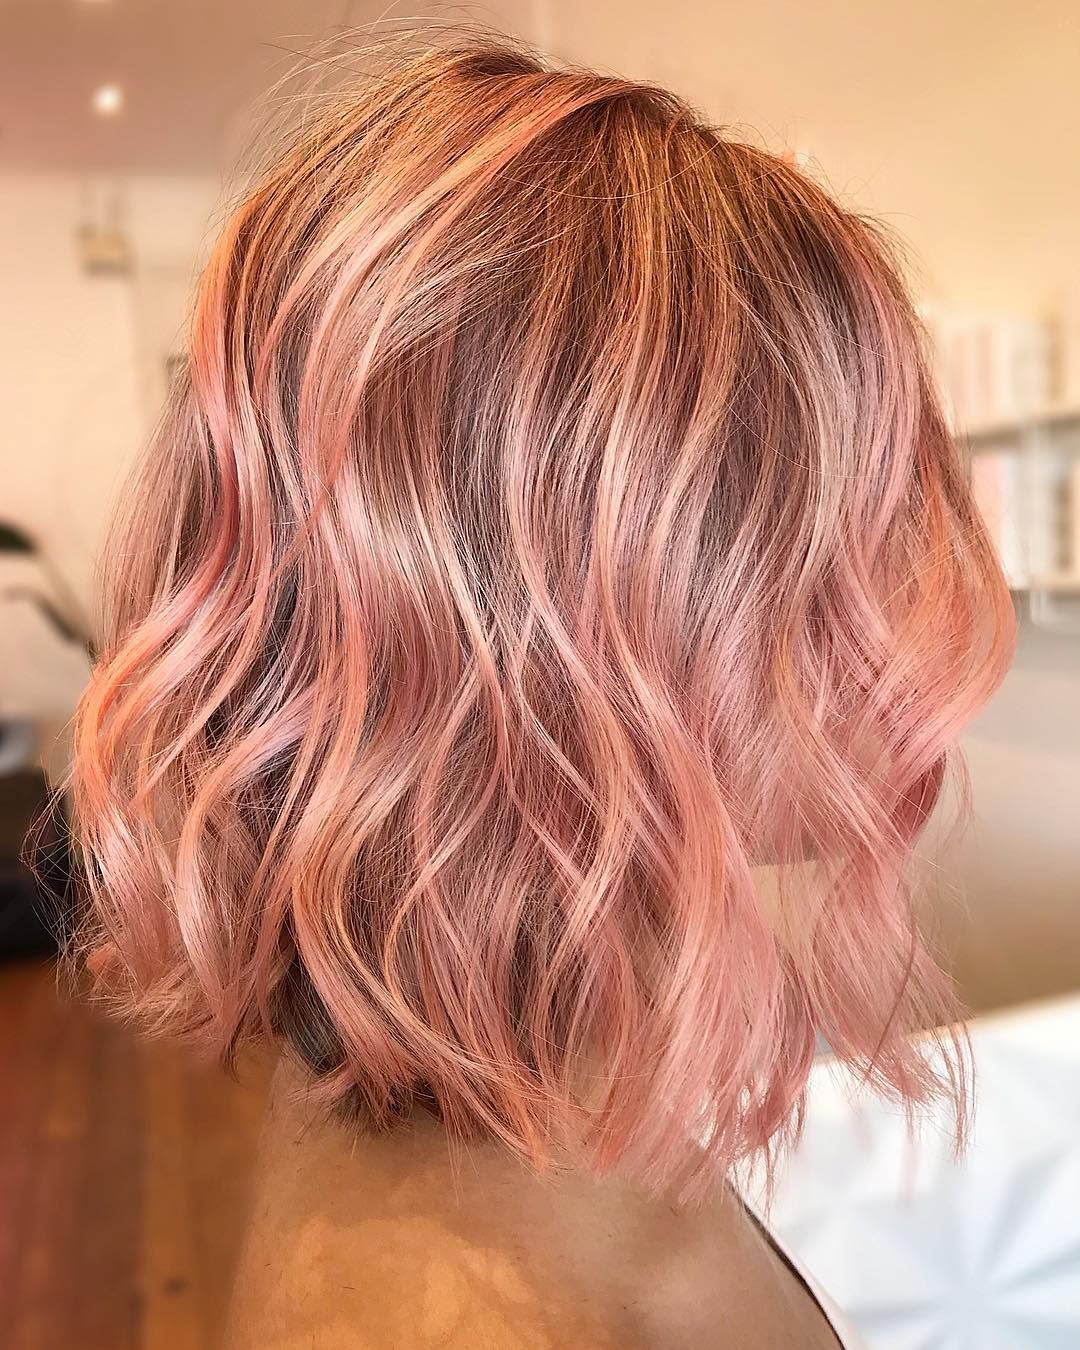 Blonde Hair Studio On Instagram P I N K For Nye Evohair Fabuloso Pro Are Temporary Dyes That Will Wash Pink Hair Dye Dyed Blonde Hair Temporary Hair Dye